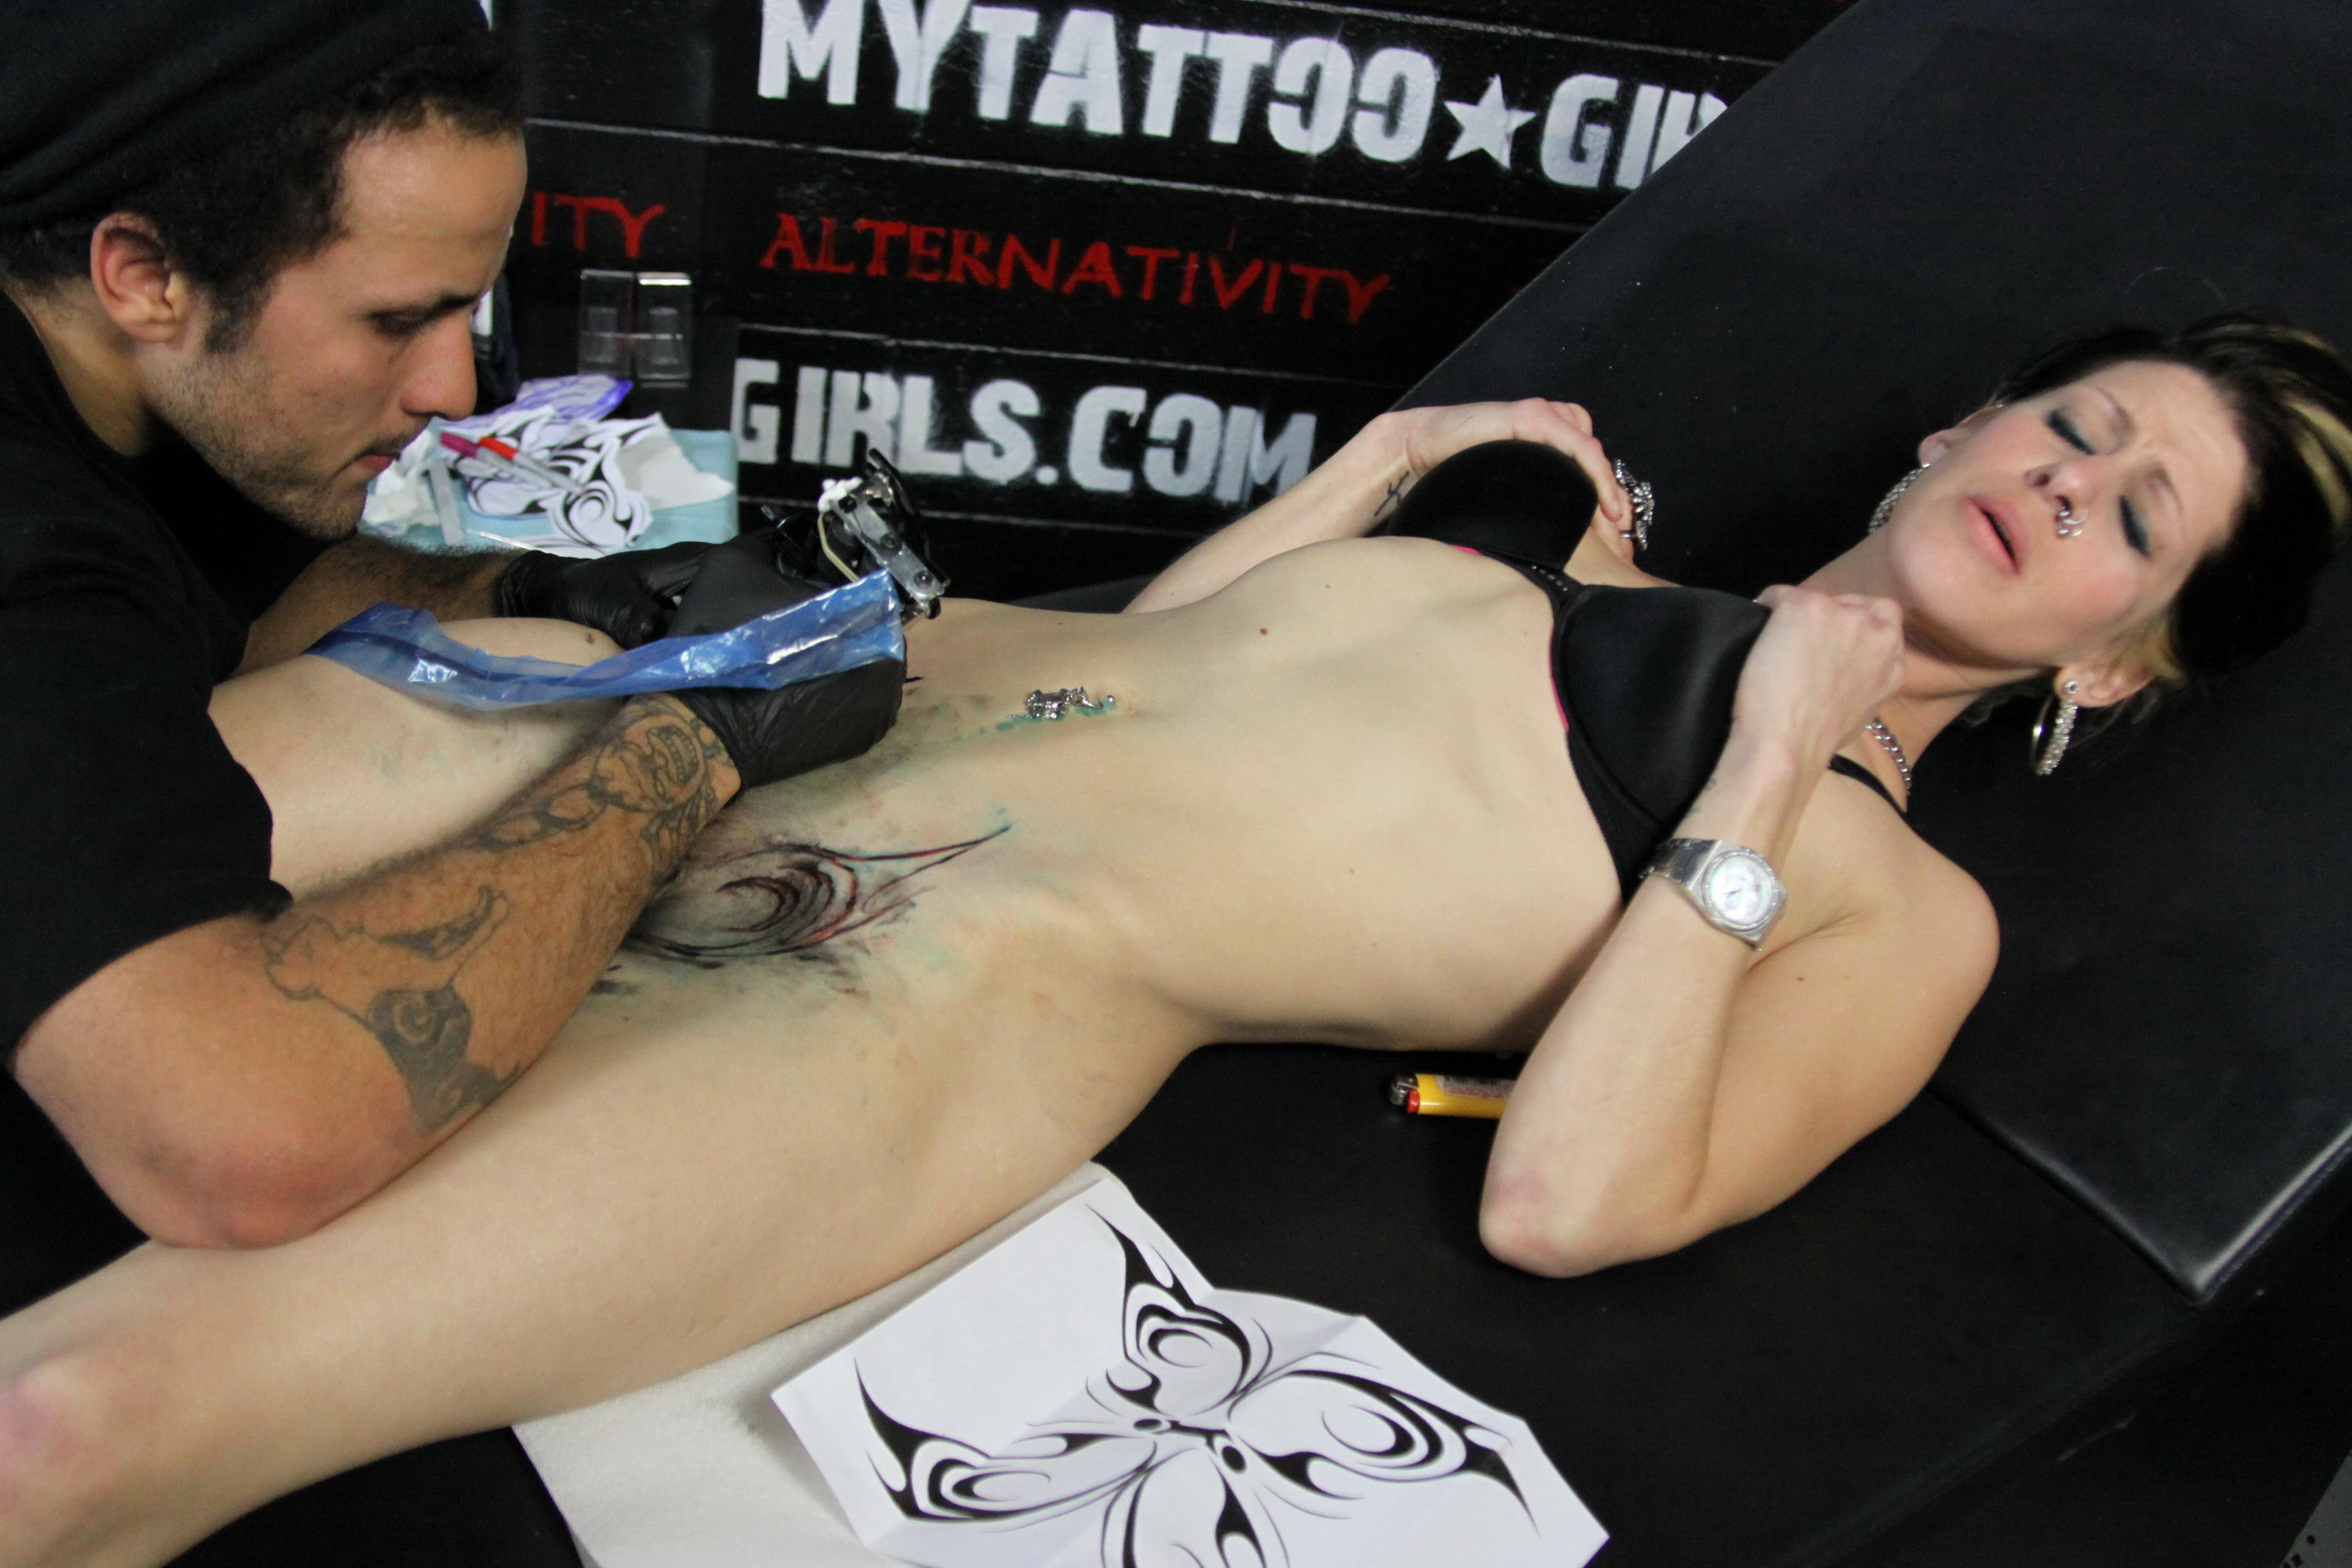 Butterfly tattoos next to her pussy, euro nudist links